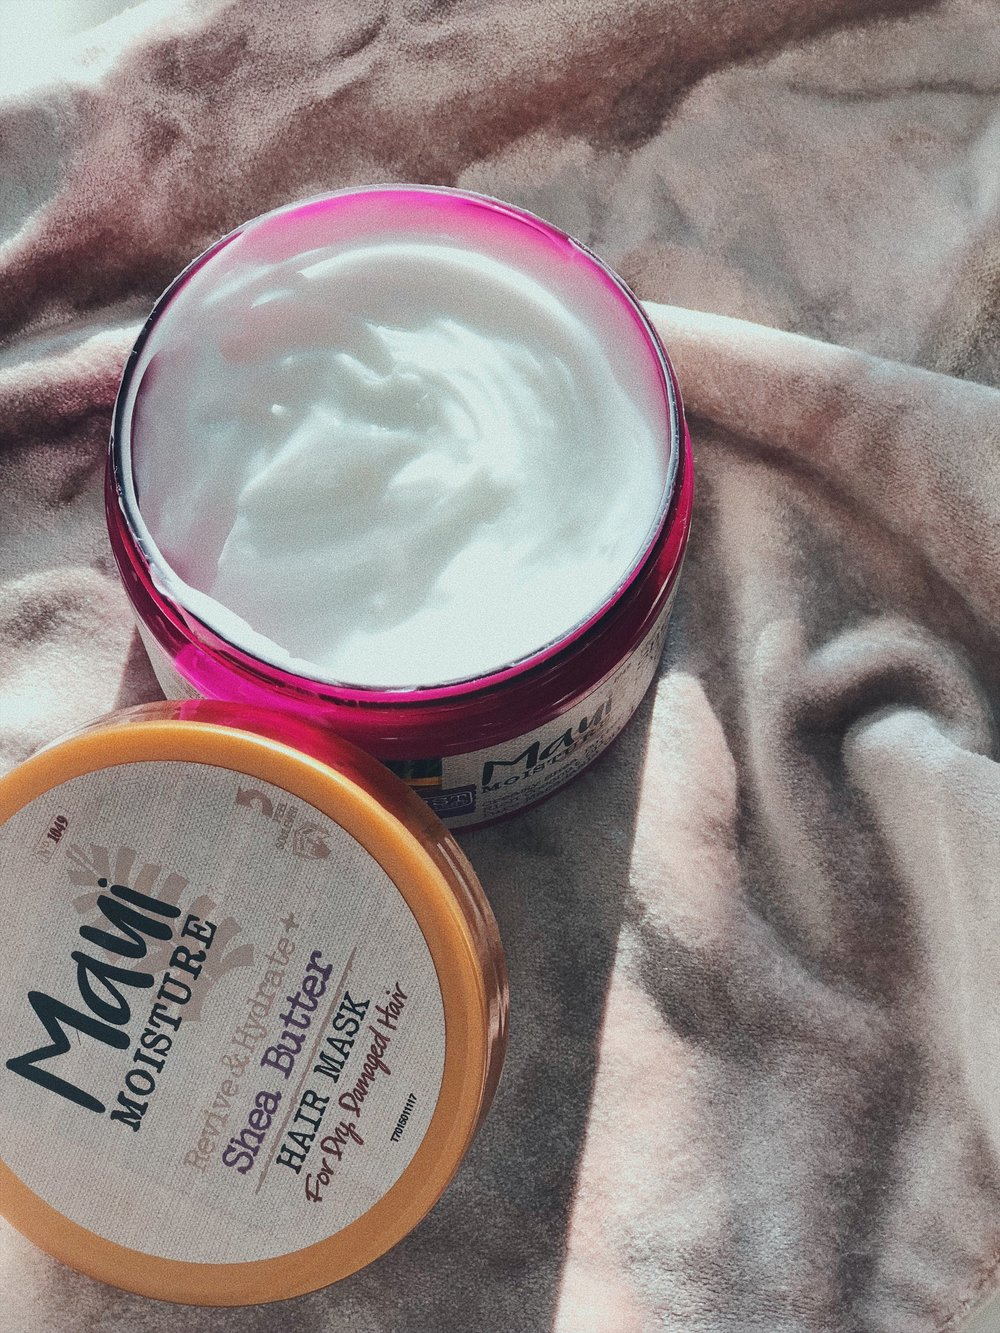 I DO A HAIR MASK EVERY TIME I WASH MY HAIR, WHICH IS ONCE A WEEK. IF I DON'T USE MY AVEDA OR MY BUDGET IS TIGHT, I LIKE TO USE THE   SHEA BUTTER ONE BY MAUI MOISTURE  , IT SMELLS GREAT AND IS REALLY HYDRATING. MY FAVORITE BUDGET ALTERNATIVE! – J